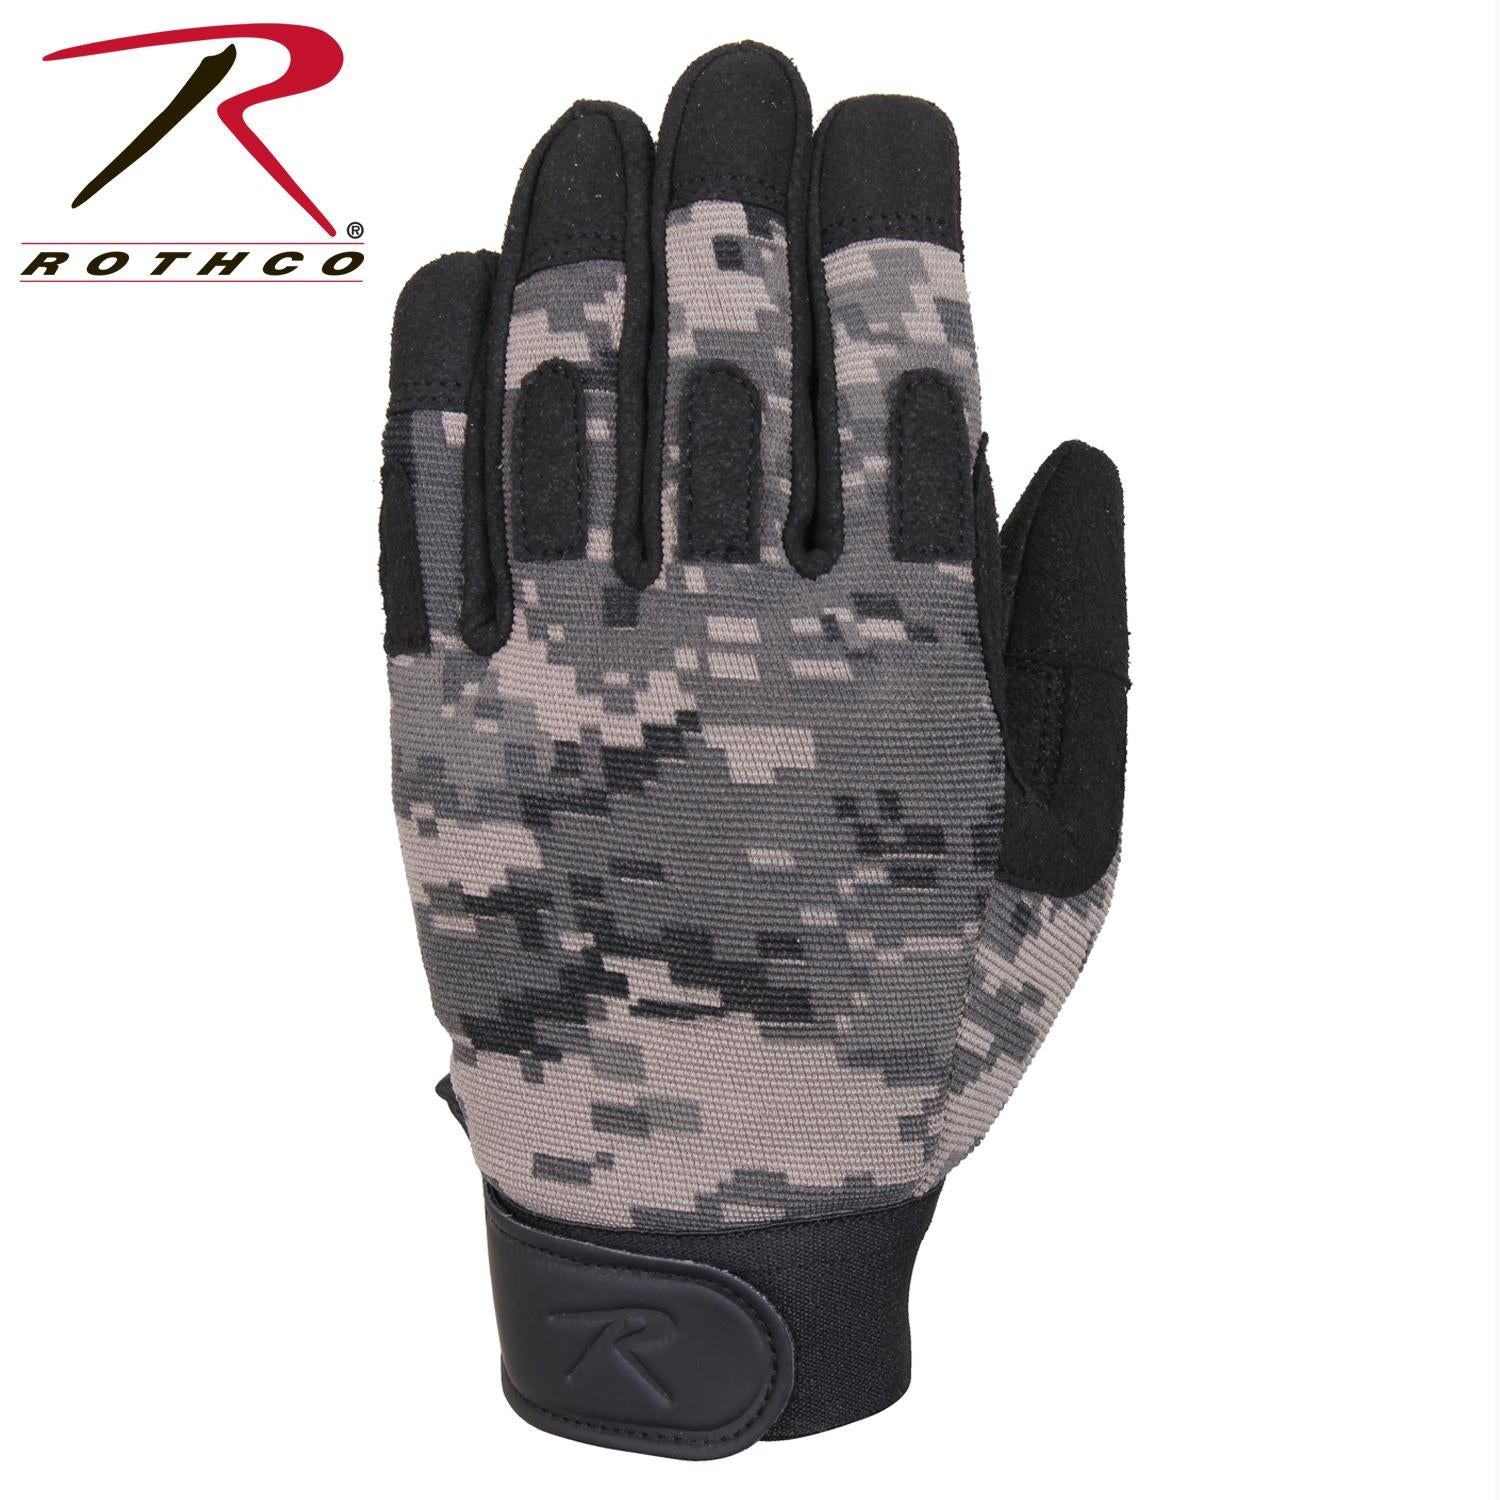 Rothco Lightweight All Purpose Duty Gloves - Subdued Urban Digital Camo / L